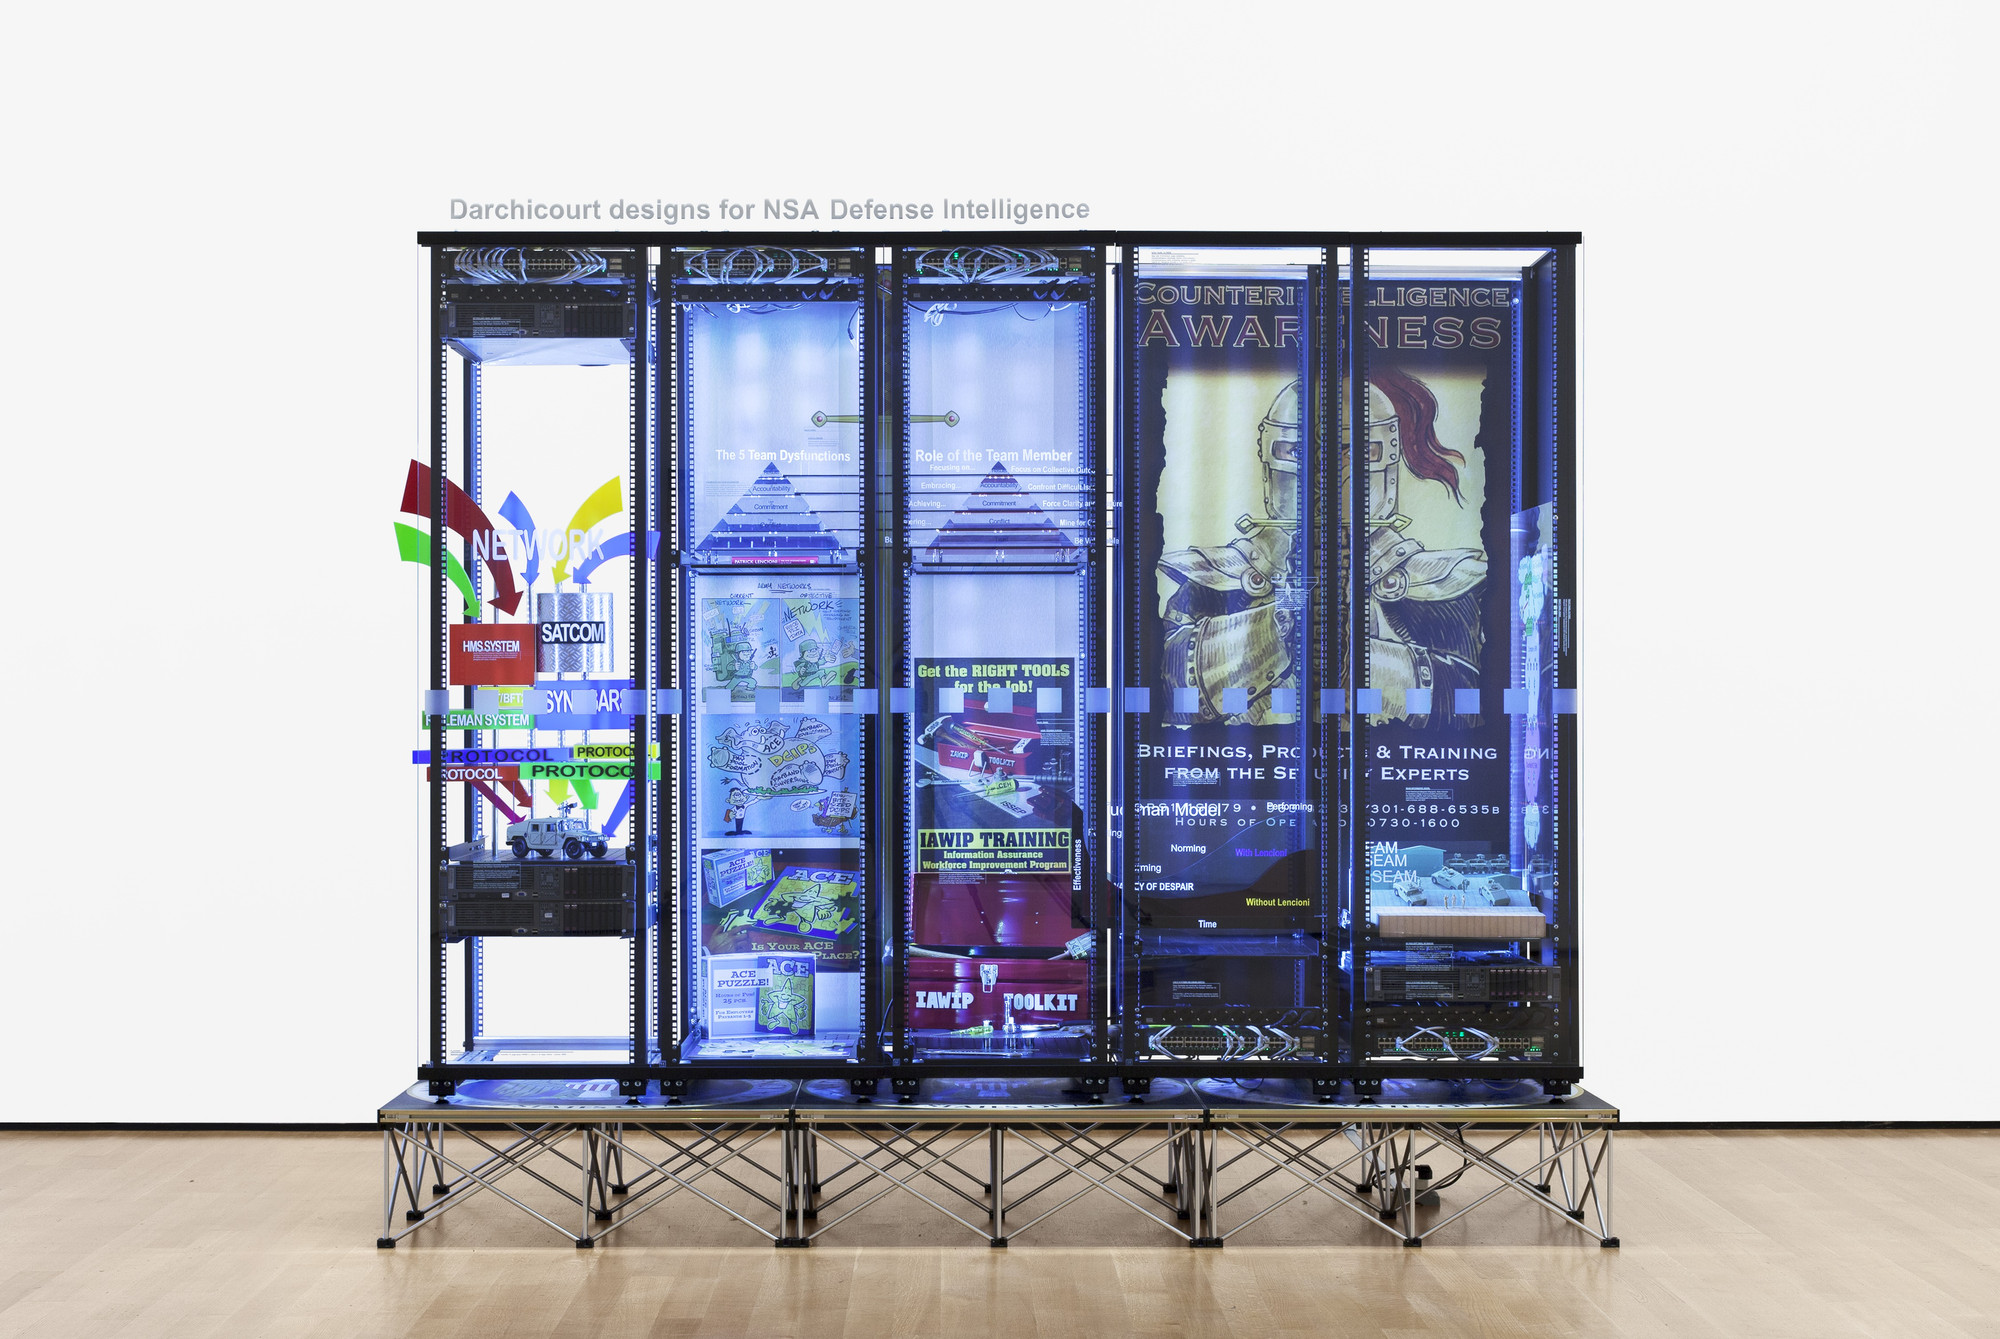 Simon Denny. Modded Server-Rack Display with Some Interpretations of David Darchicourt Designs for NSA Defense Intelligence. 2015